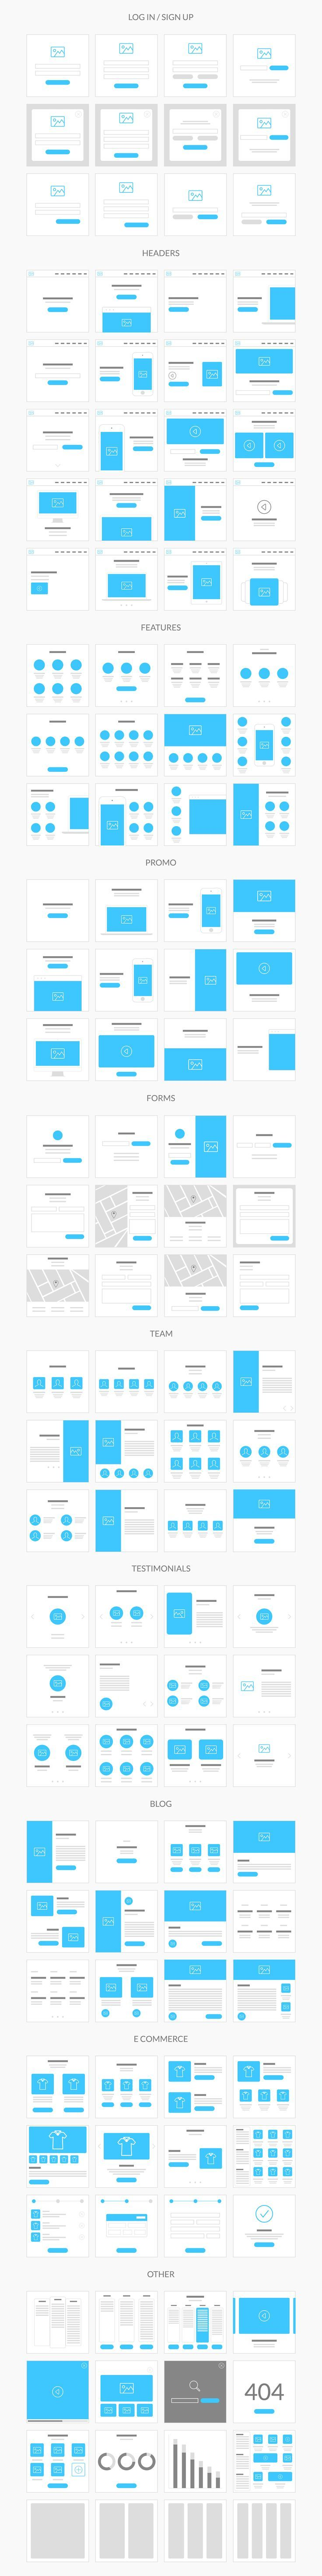 Flowy is made with fast workflow in mind, so we created 236 ready to use templates, built on the 1170 grid and in Photoshop file format. You can create flowcharts for both mobile and web projects of any complexity and show them to your team or clients in